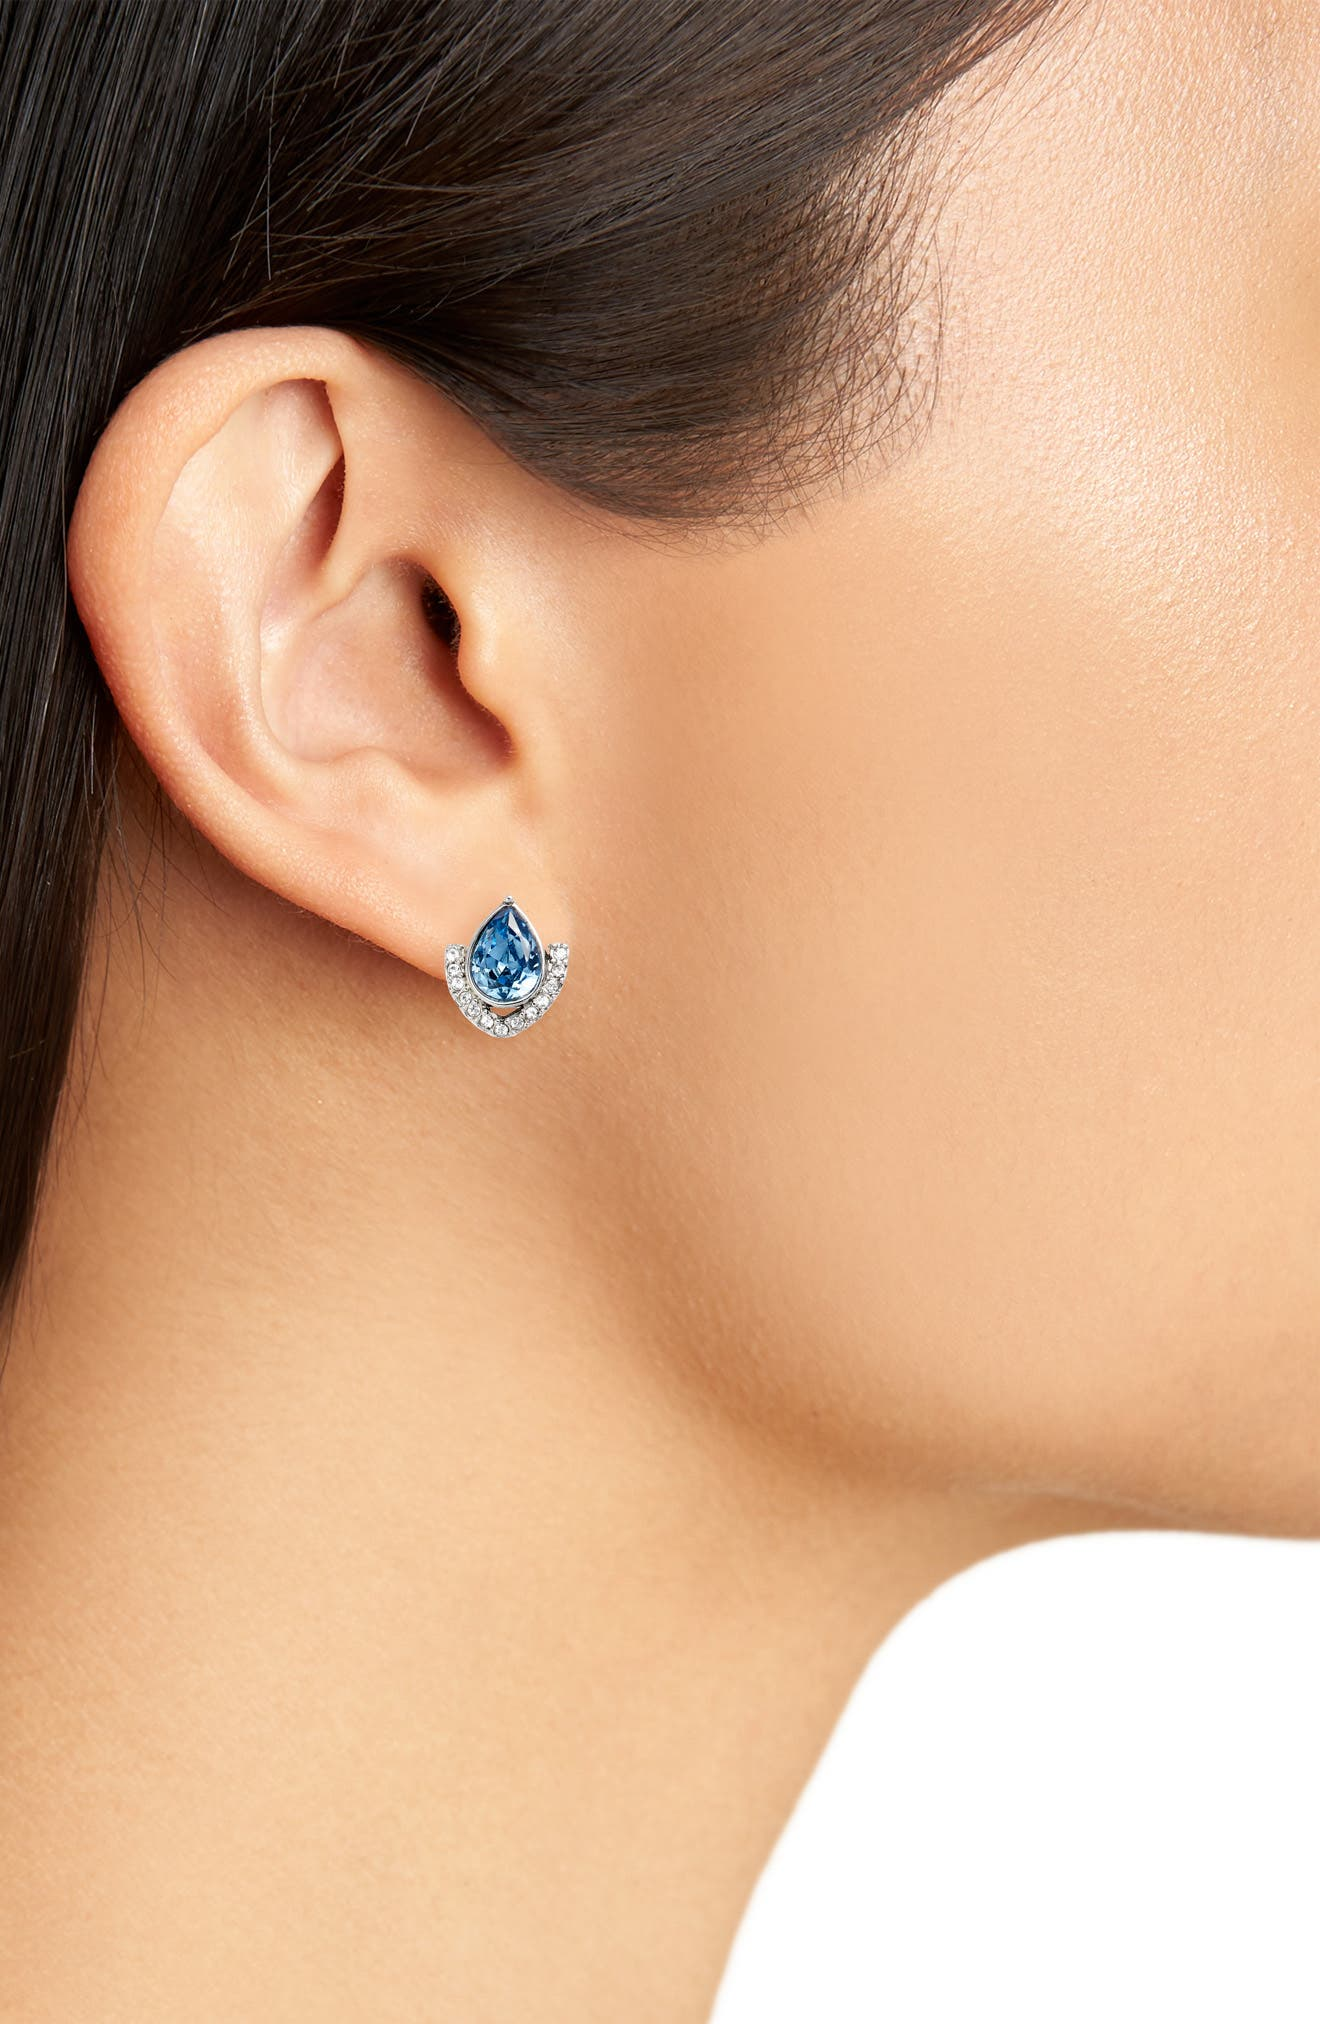 Stud Earrings,                             Alternate thumbnail 2, color,                             040